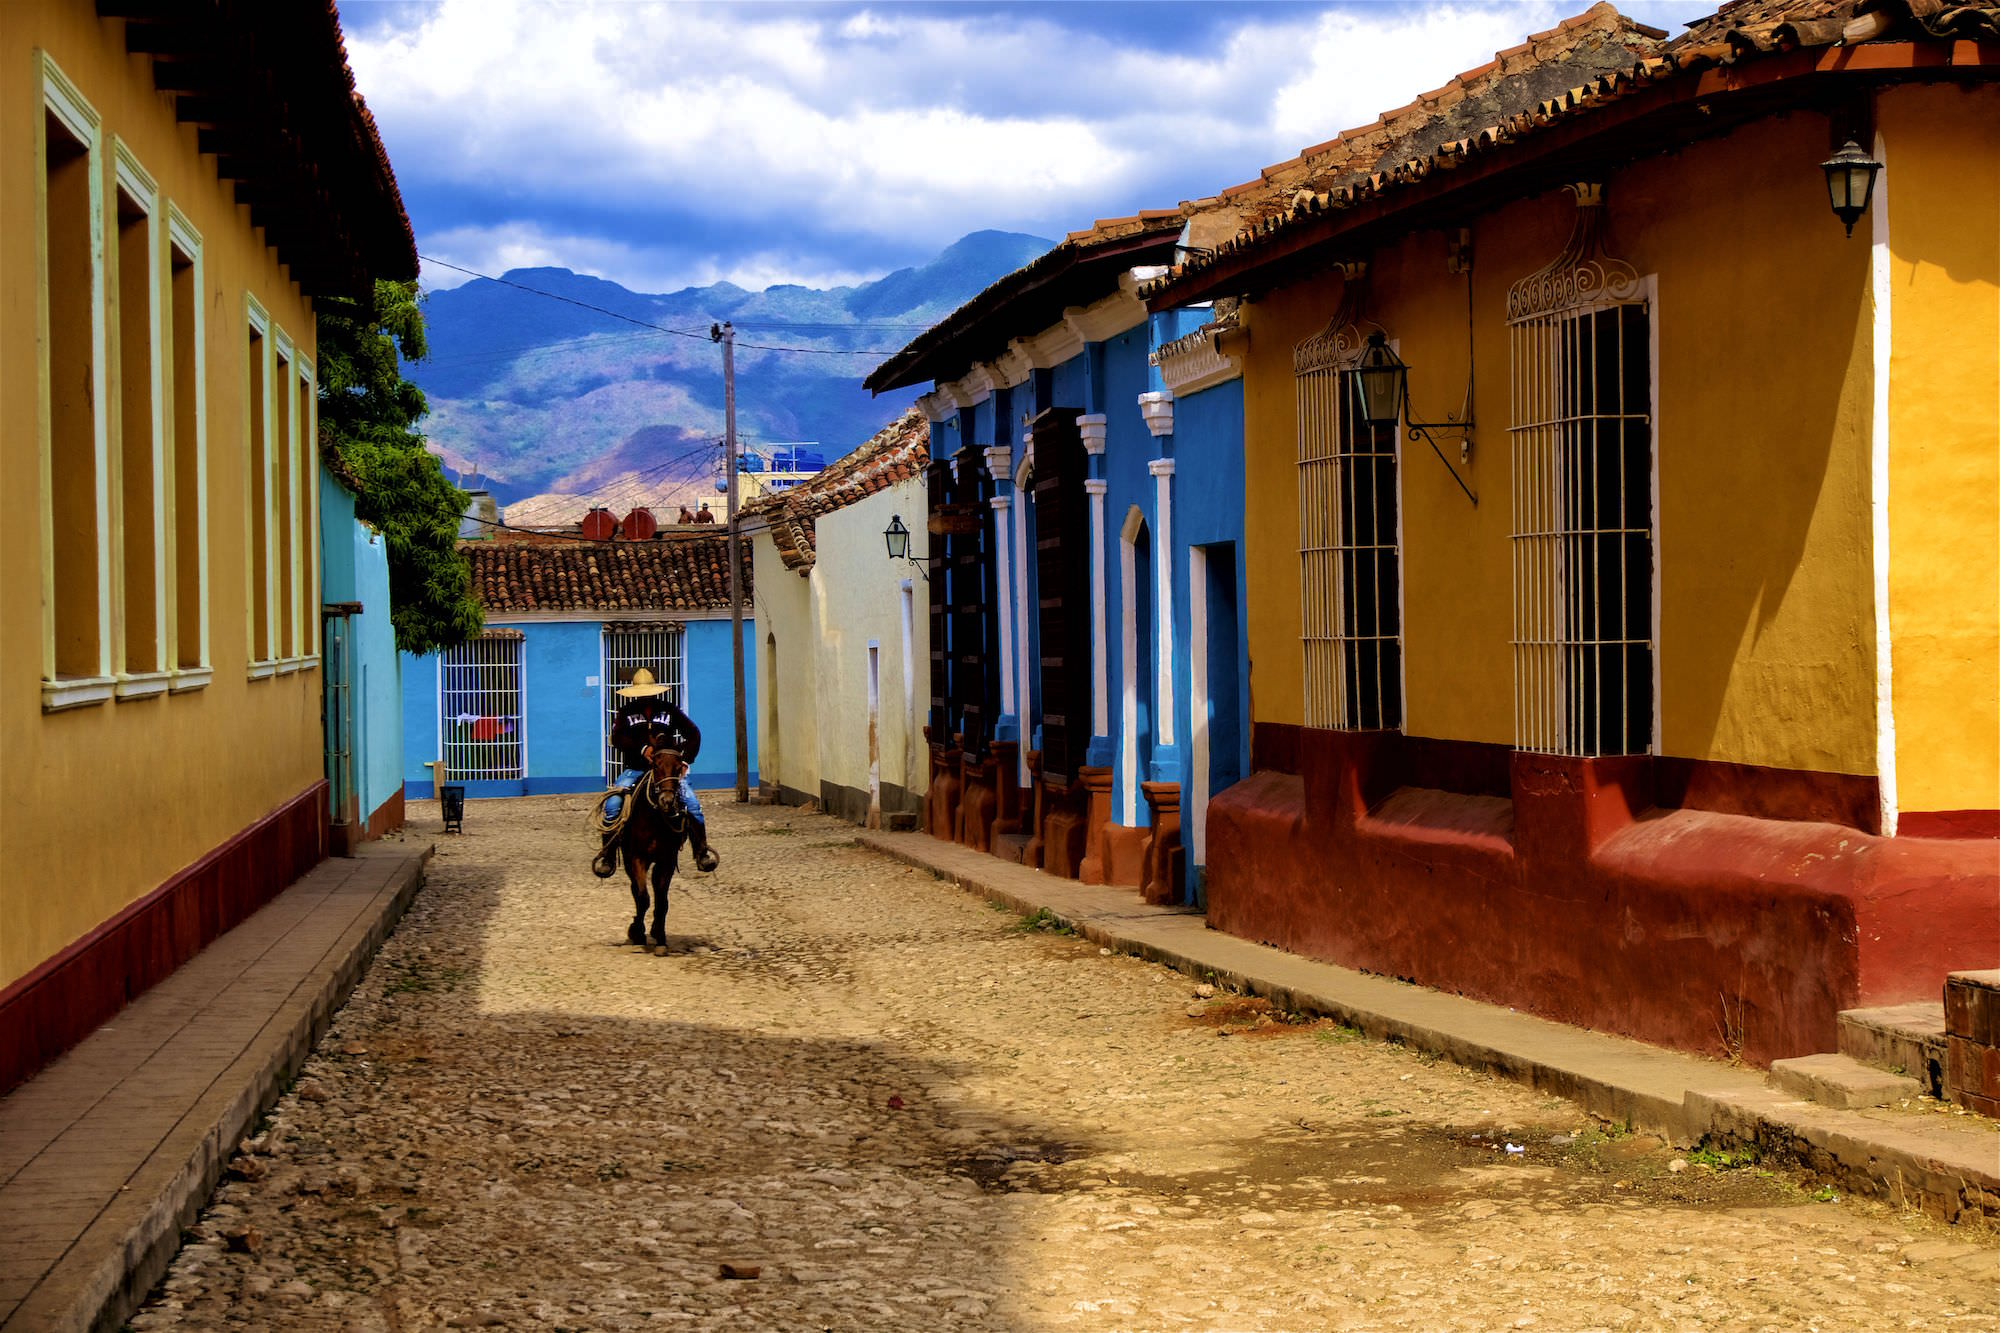 Cowboy riding down a street in Trinidad. Daily life in Cuba.